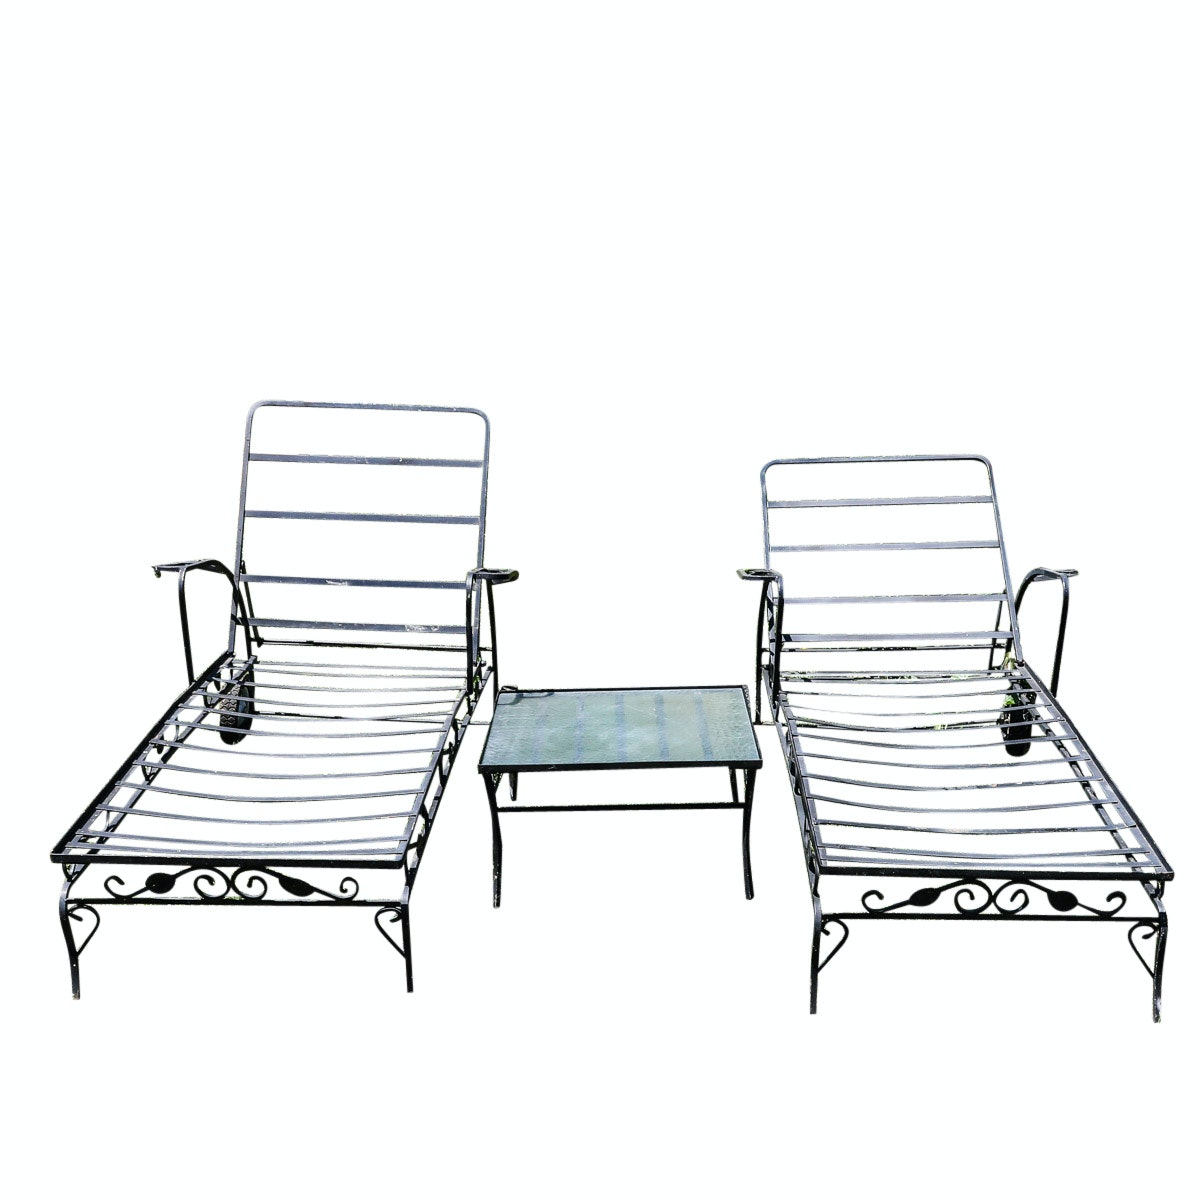 Patio Lounge Chairs and Side Table